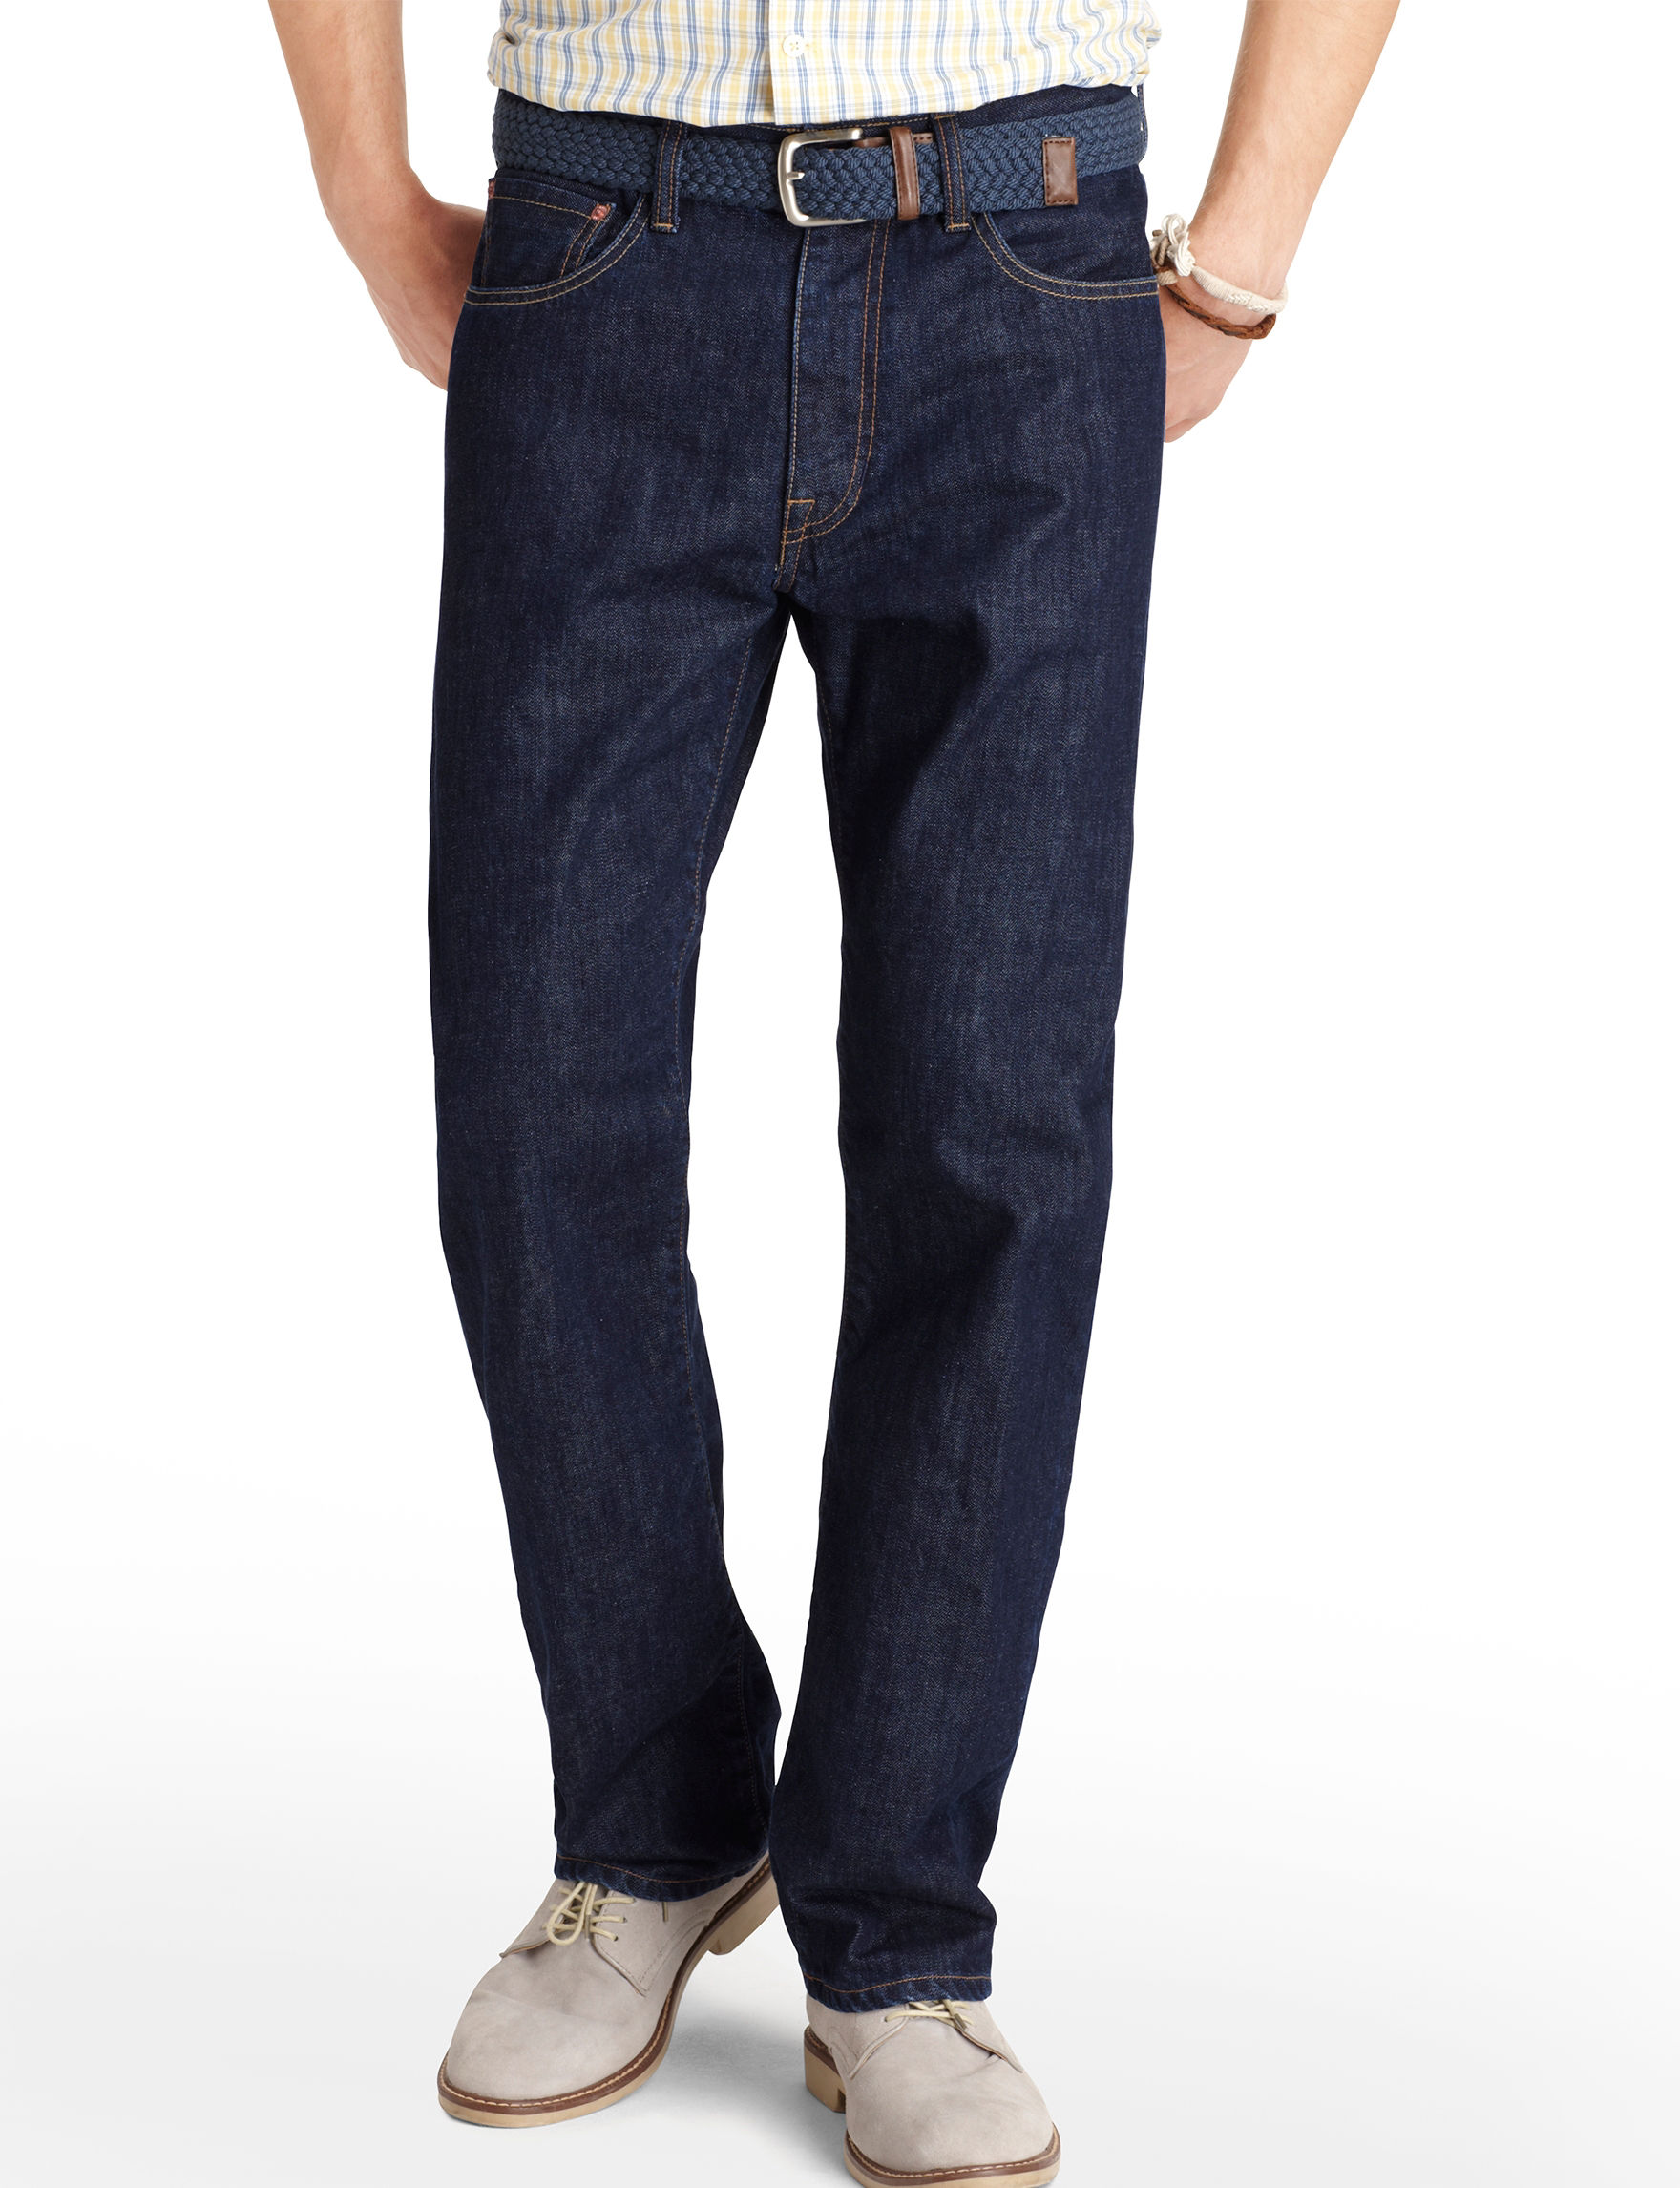 Brand New with tags Izod Comfort Stretch straight fit men's 38 x 34 Dark wash jeans see pictures for color Sits below waist Slim fit at seat and thigh Straight leg fabric stretches for maximum comfort Soft touch Unique finish is applied to give the garment a softer feel and greater comfort.